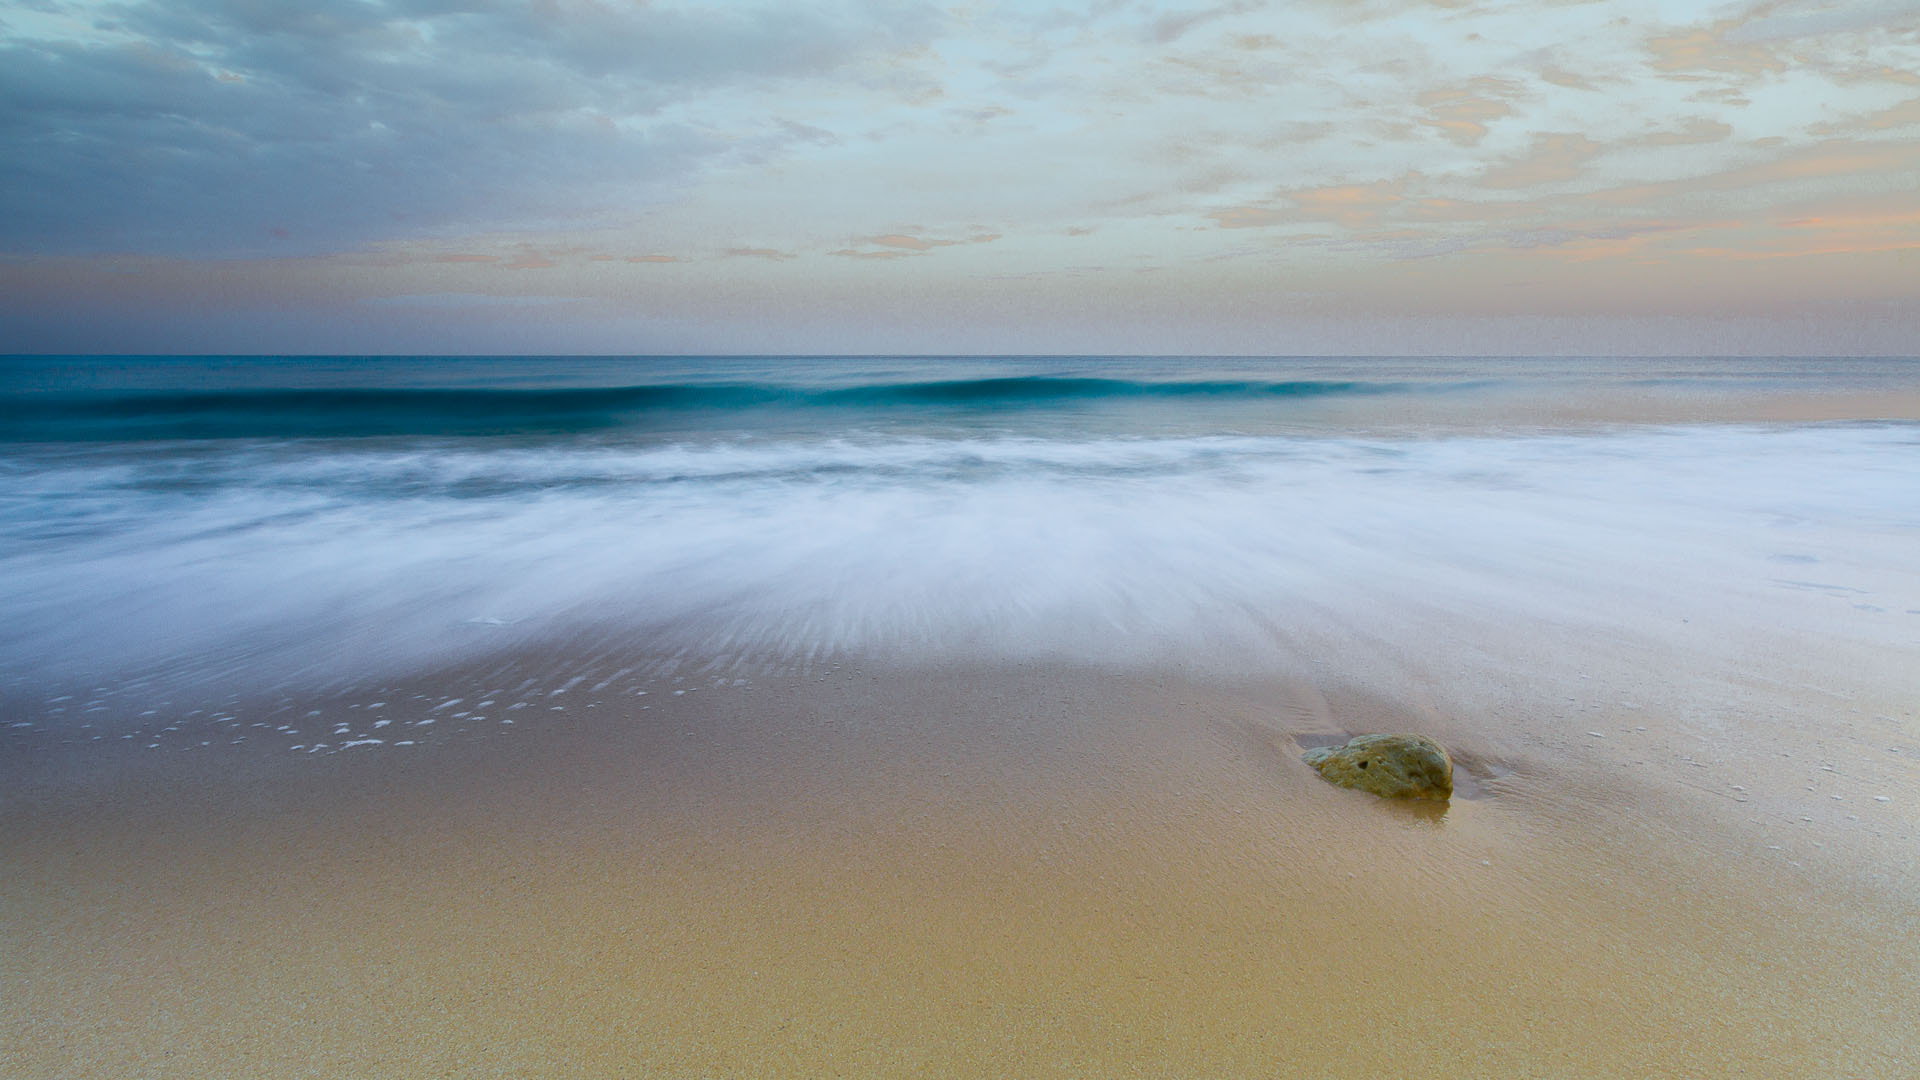 Photograph At the Beach (Hammamet, Tunisia, 2012) by Andreas Buchner on 500px